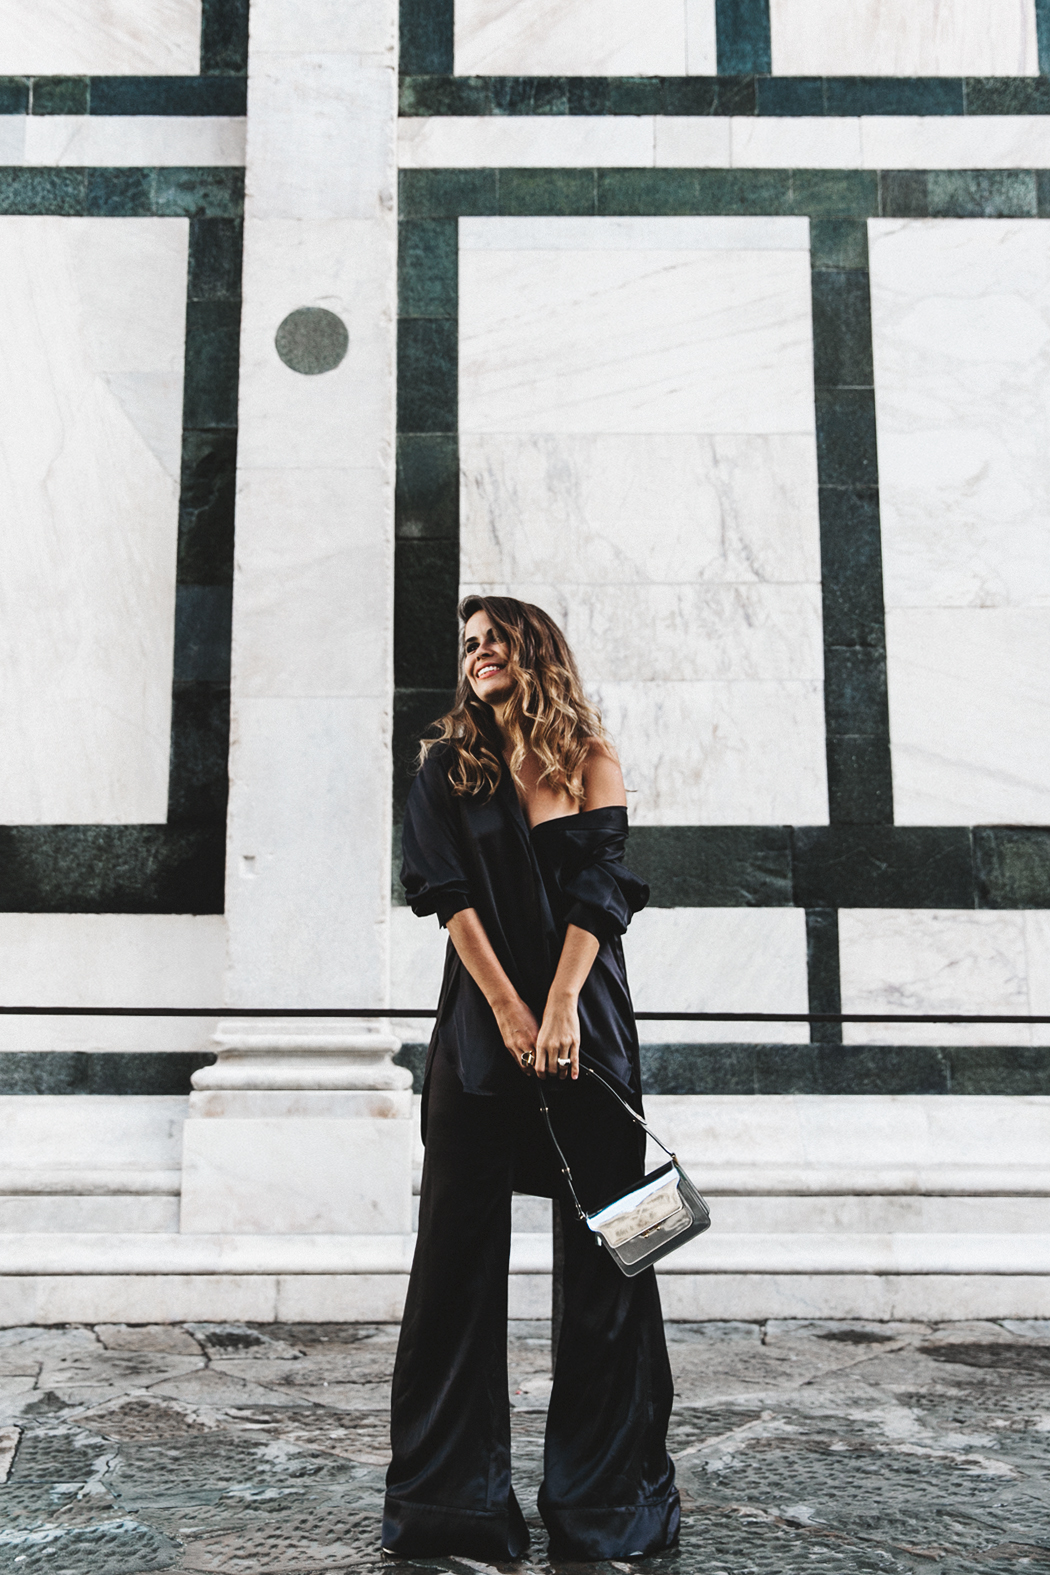 Firenze4Ever-Luisa_Via_Roma-Ellery_Brand-Black_Outfit-Duomo_Florence-Outfit-Street_Style-22